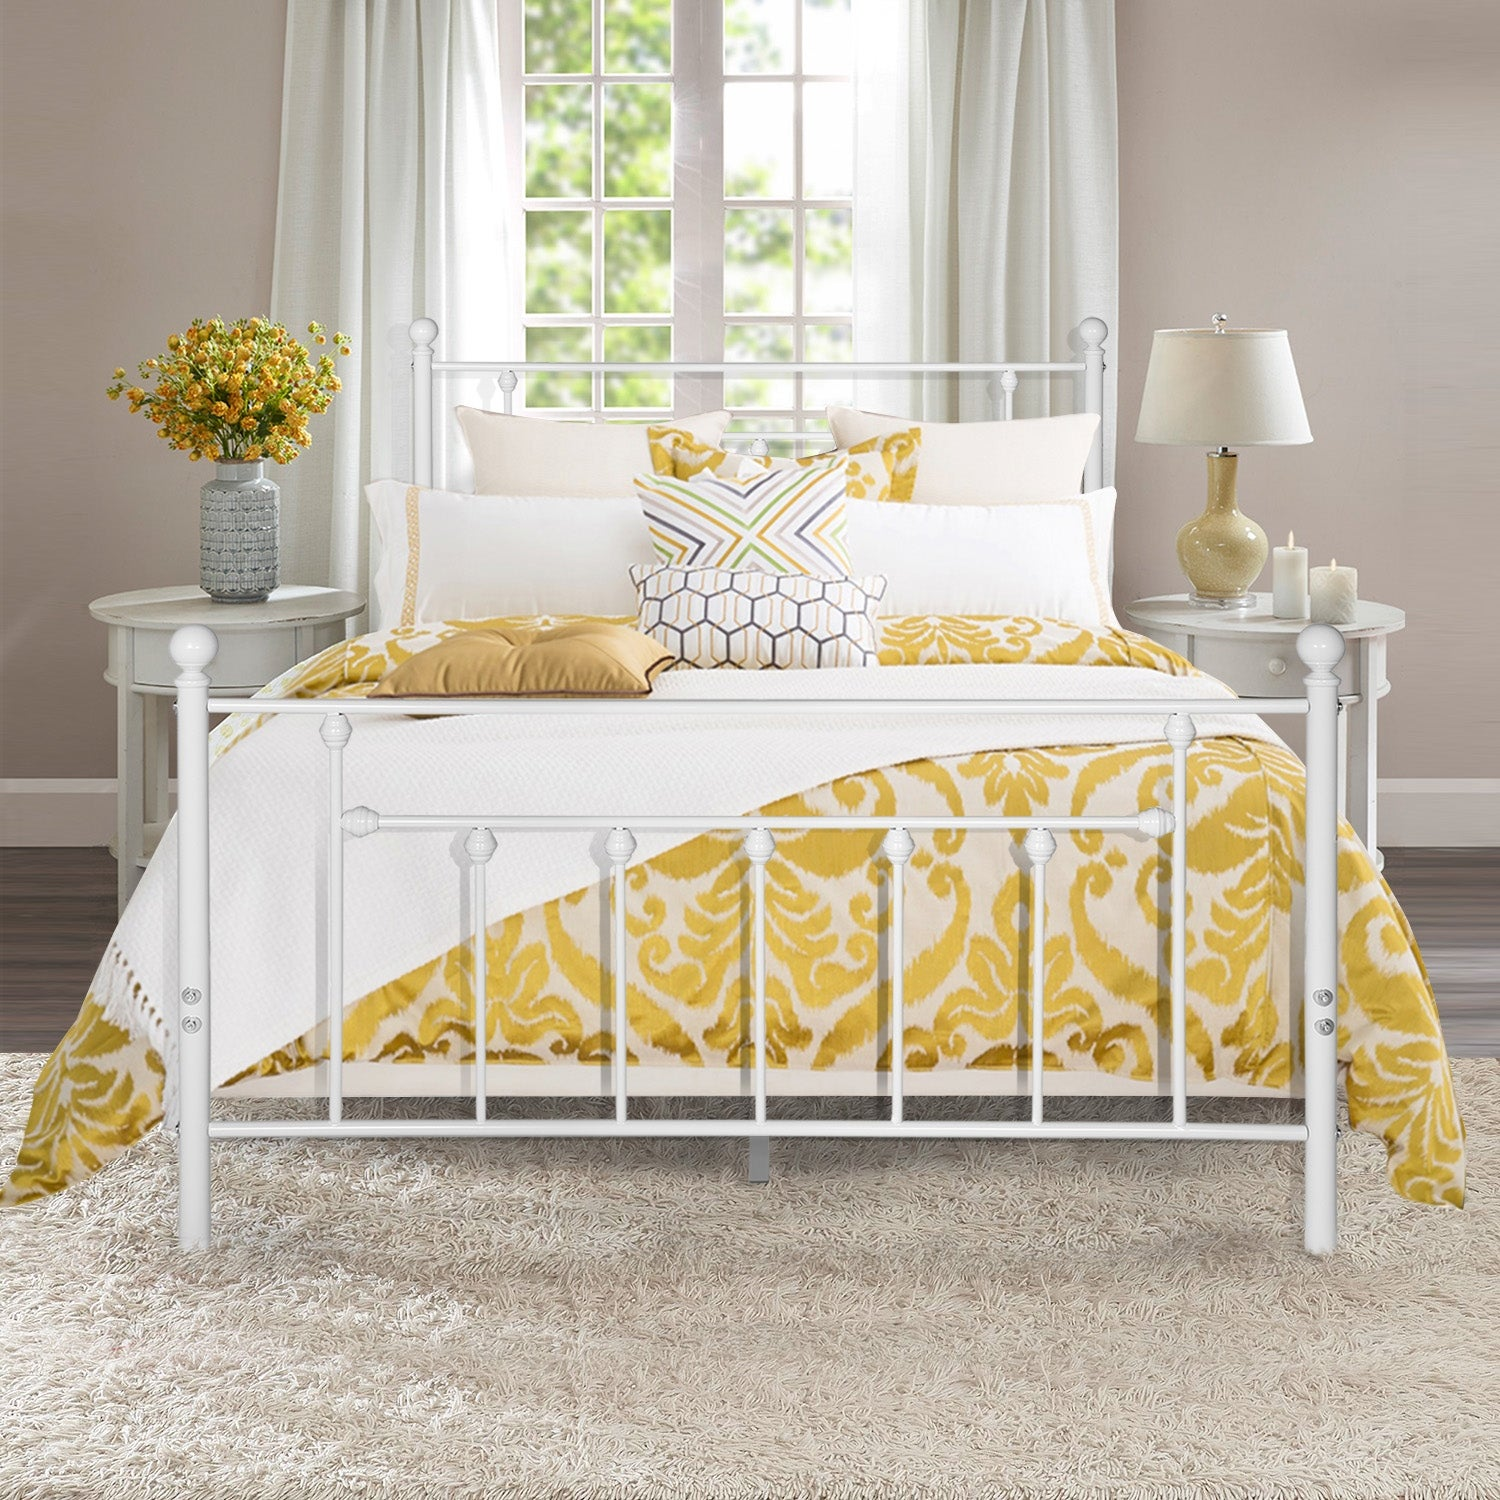 Vecelo Antique White Metal Bed With Pipe Frame Headboard Footboard Twin Full Queen Size 3 Opotion Overstock 29824104